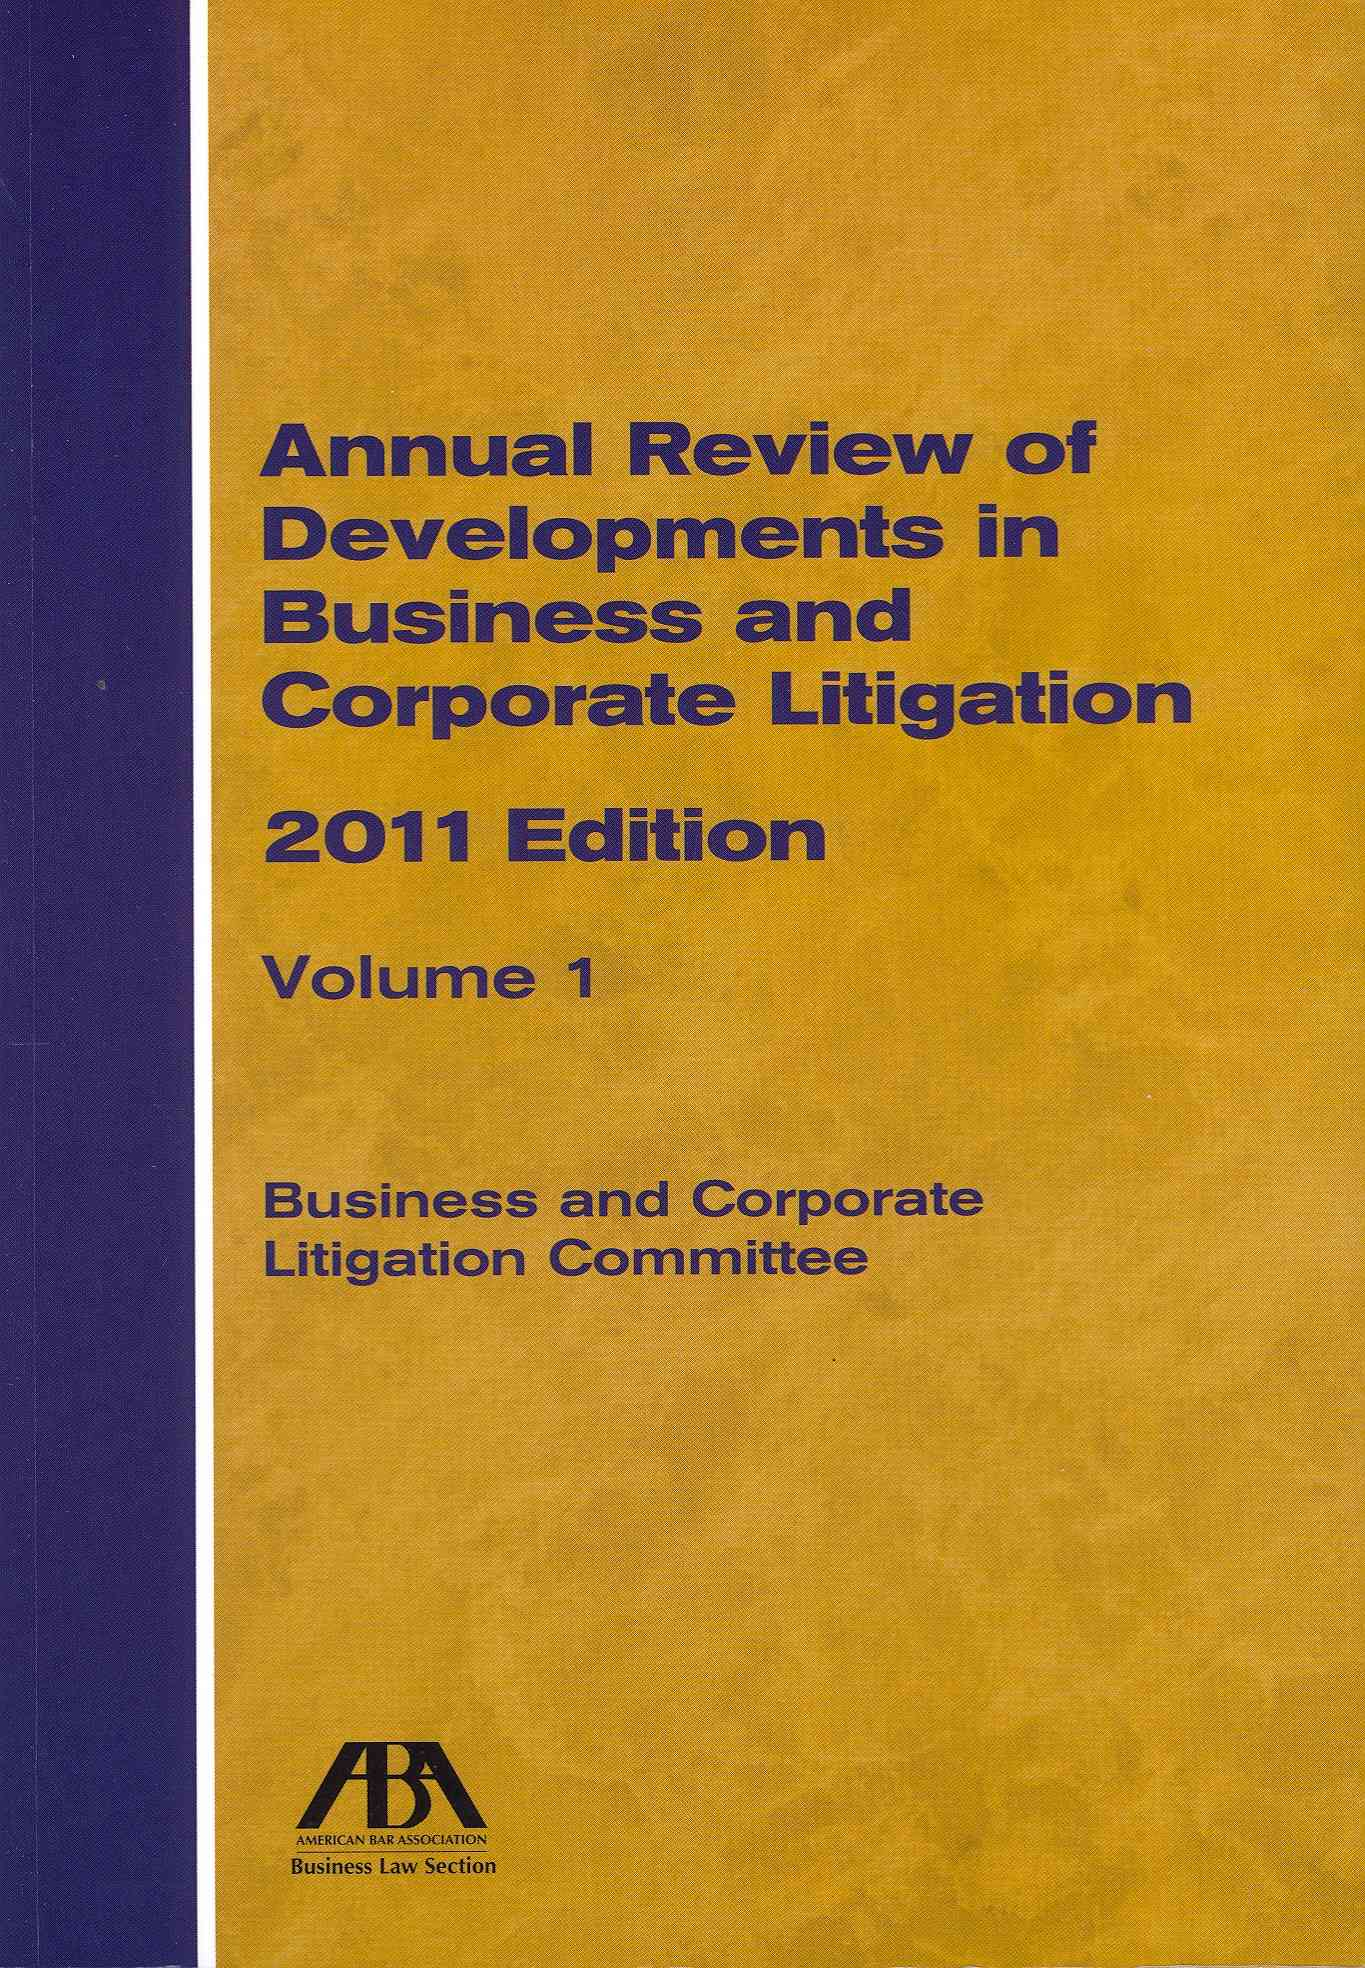 Annual Review of Developments in Business and Corporate Litigation 2011